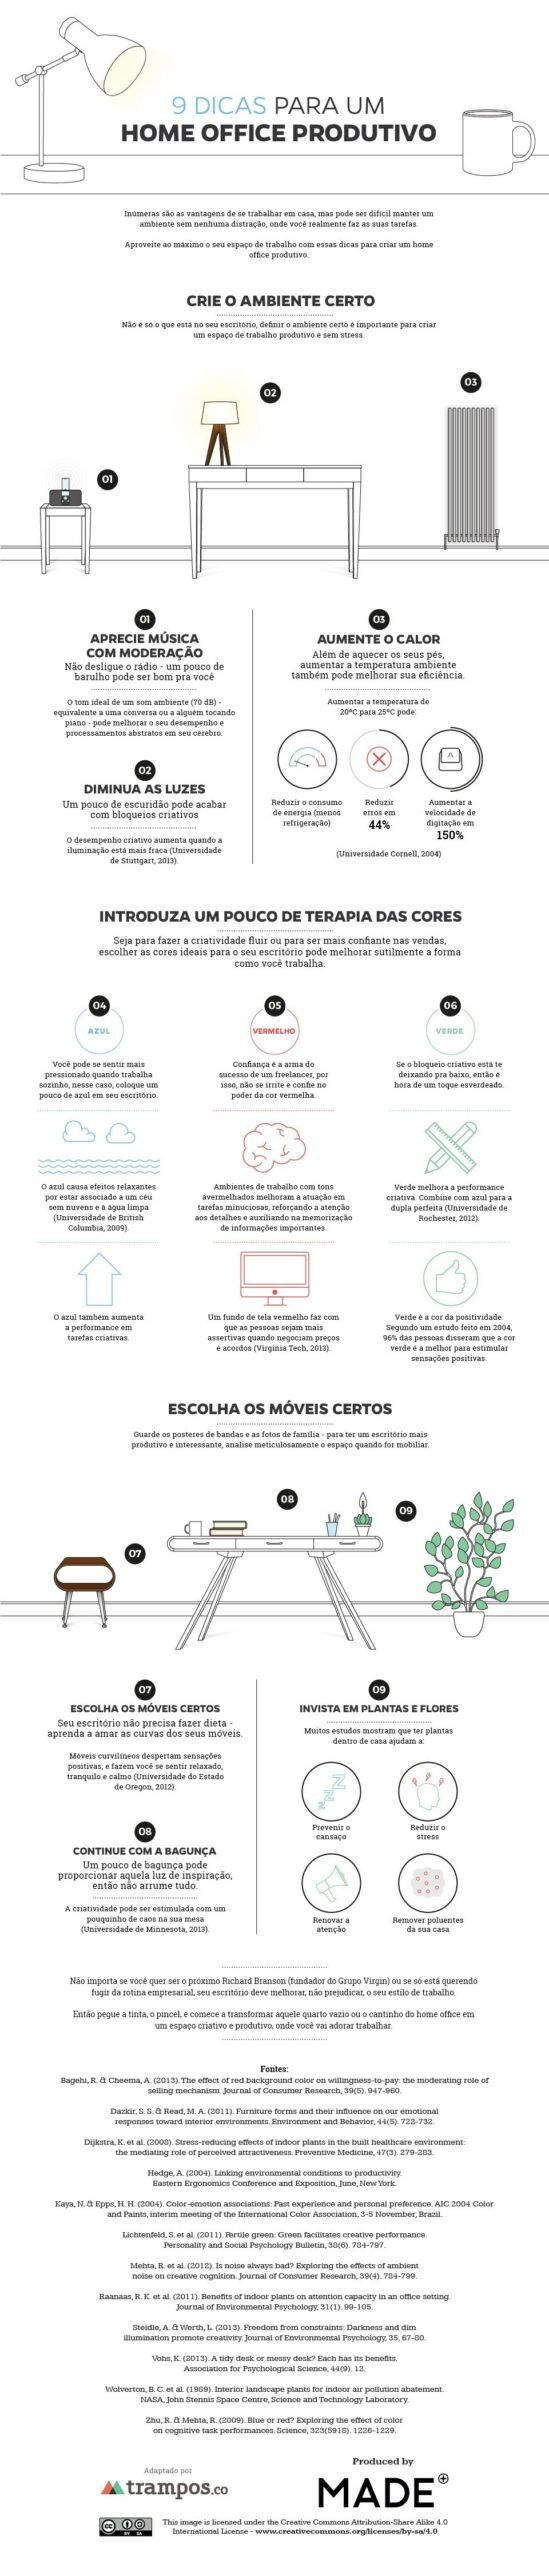 infográfico do home office corporativo